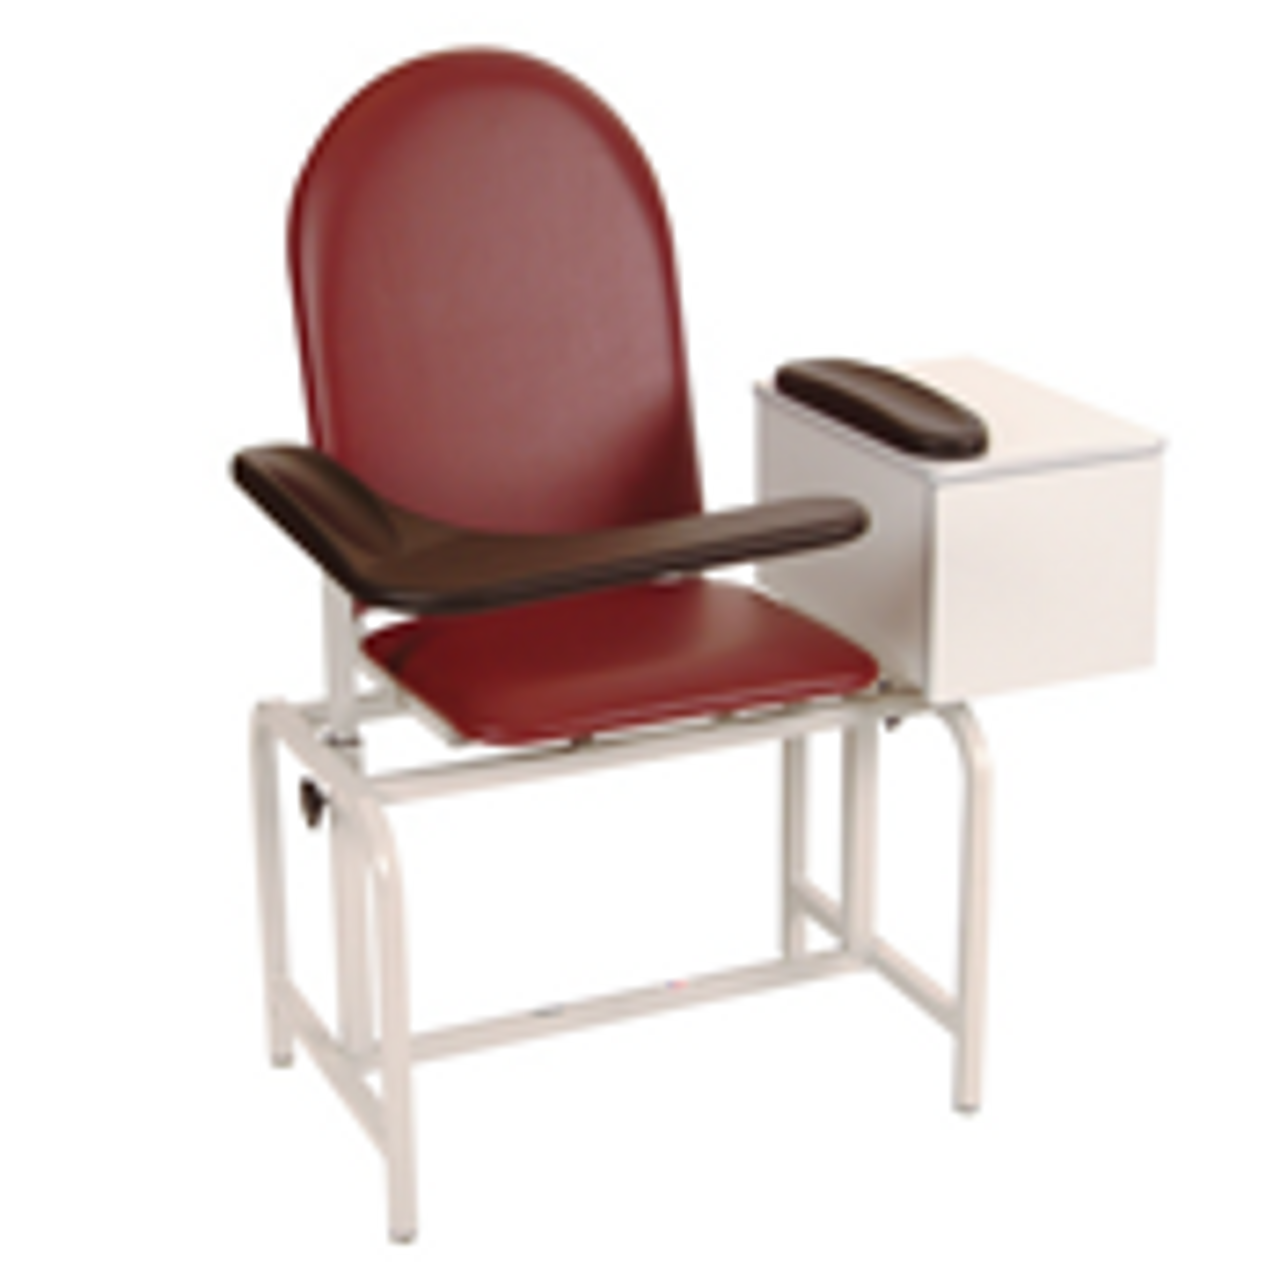 Blood Draw Chairs | Phlebotomy Chairs